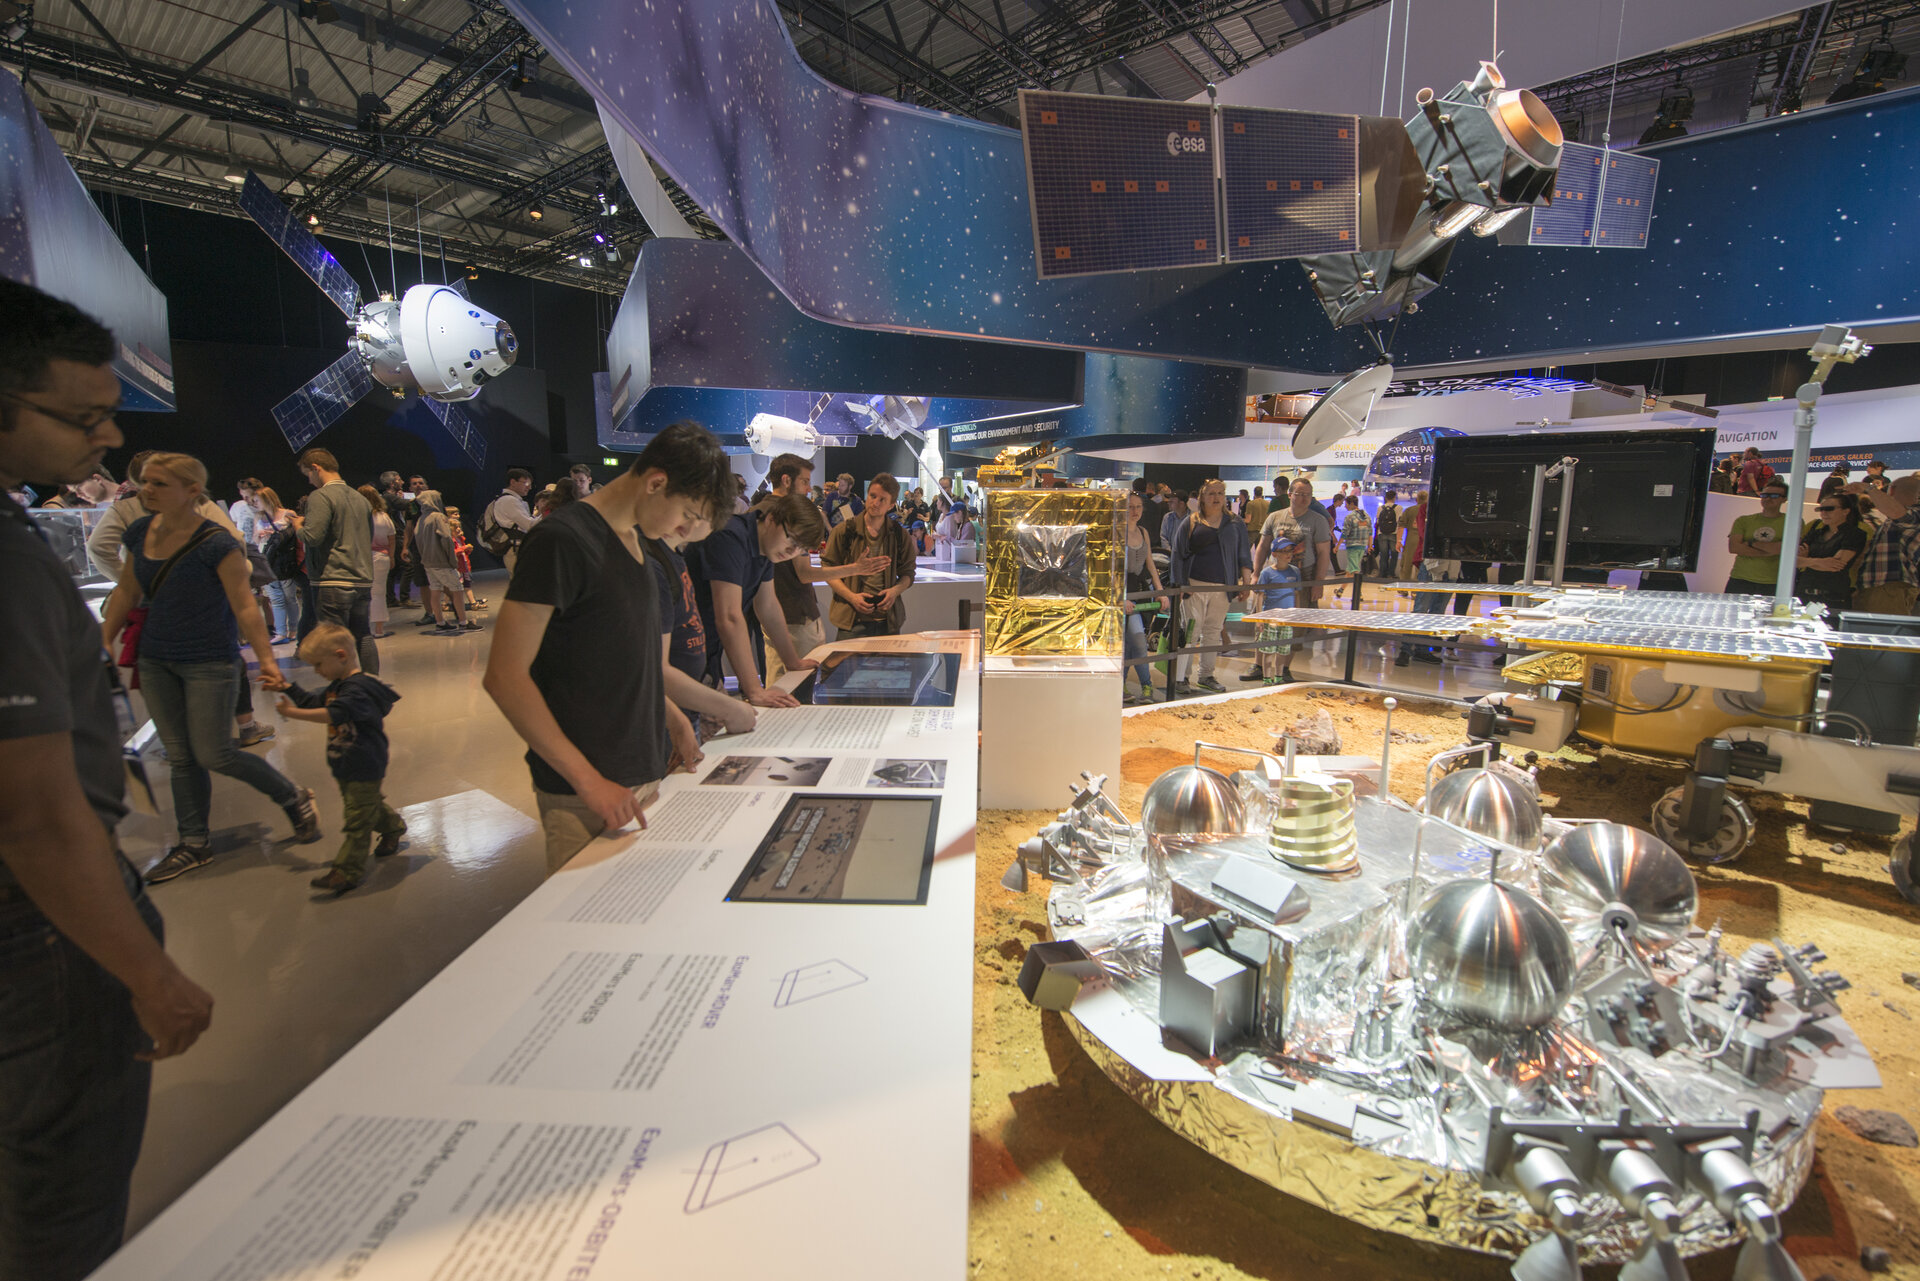 Public day at the 'Space for Earth' space pavilion